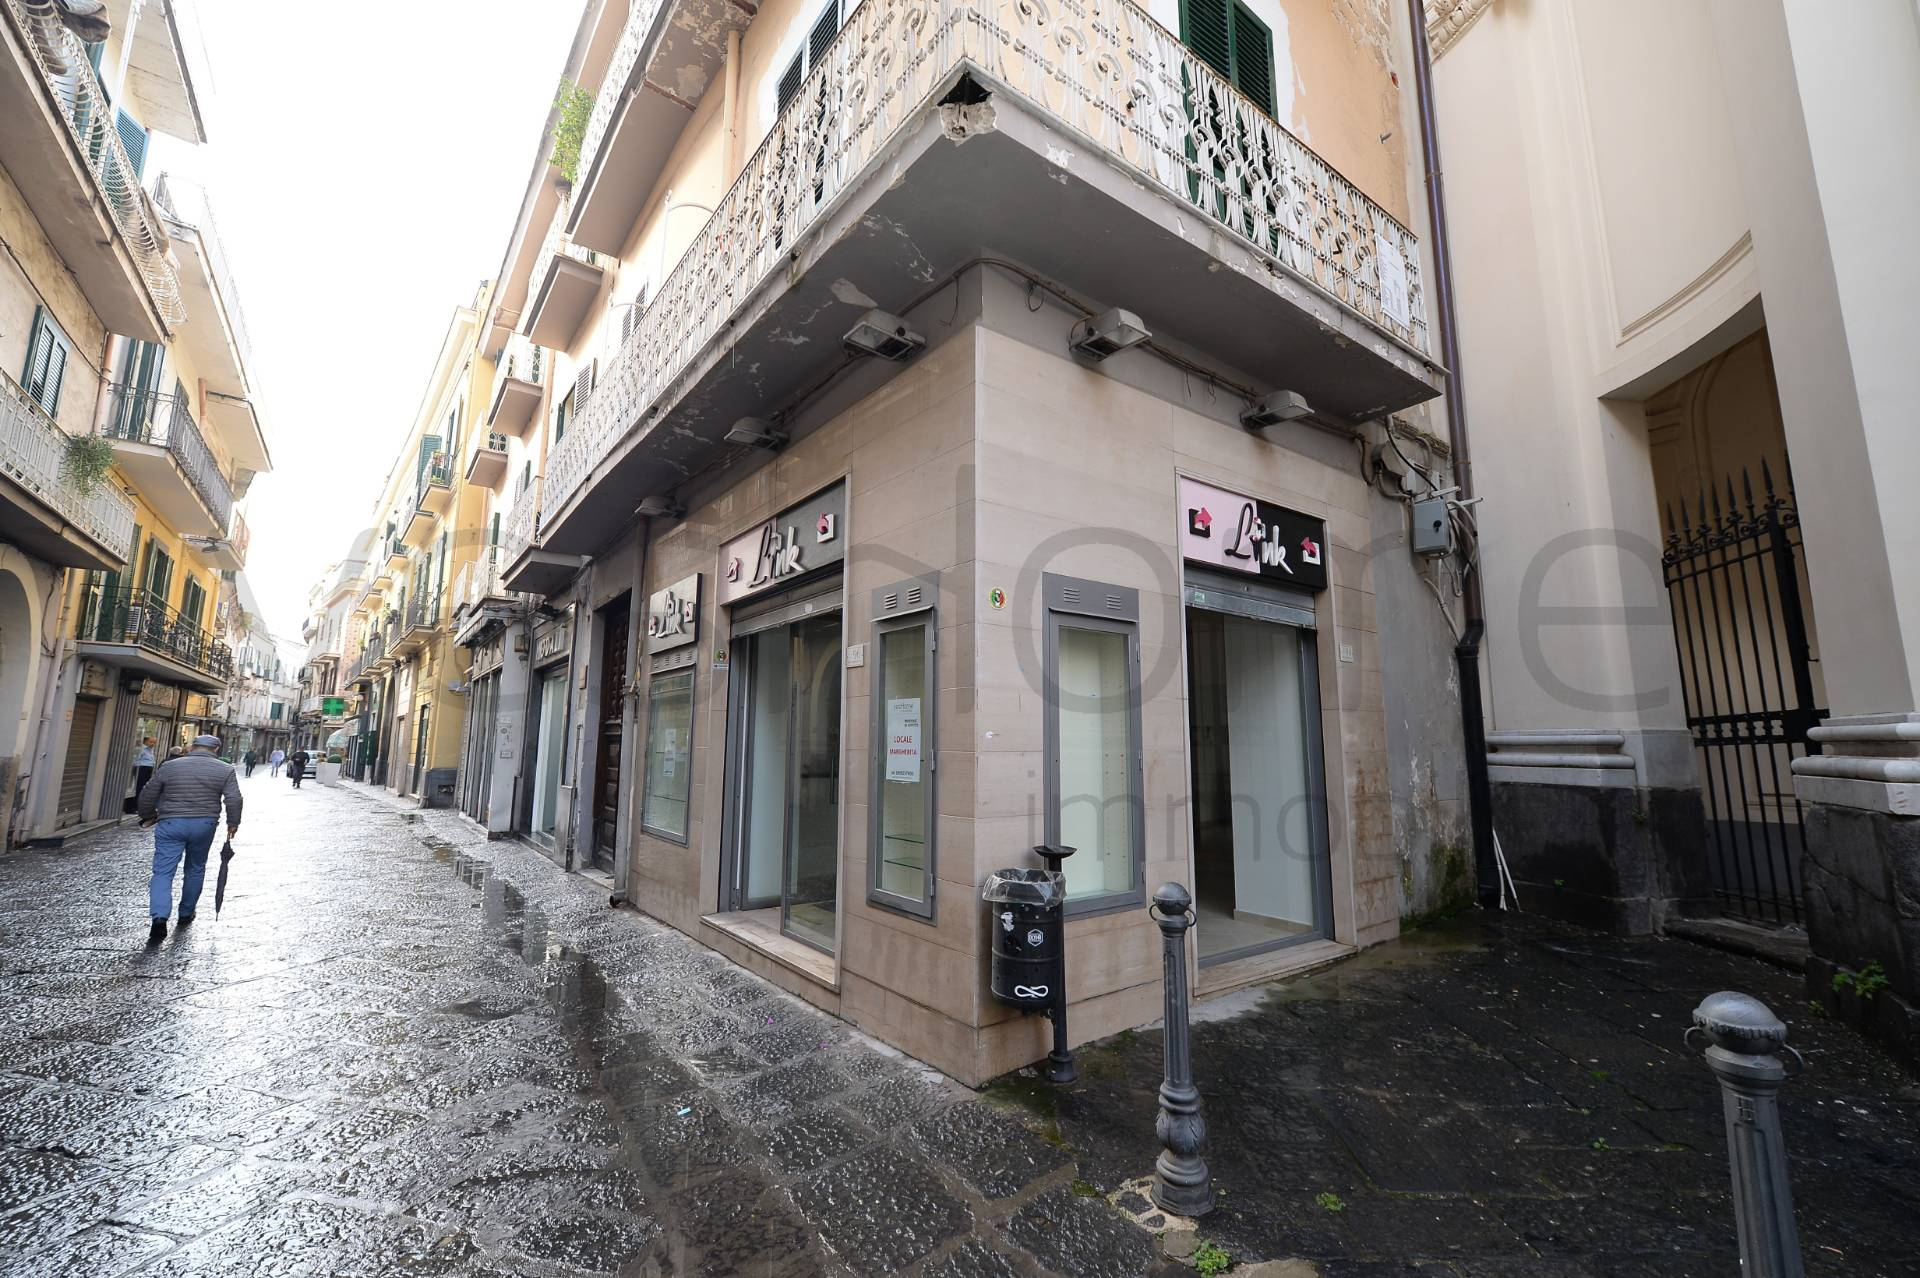 Locale commerciale in affitto a nola cod 148 for Affitto commerciale